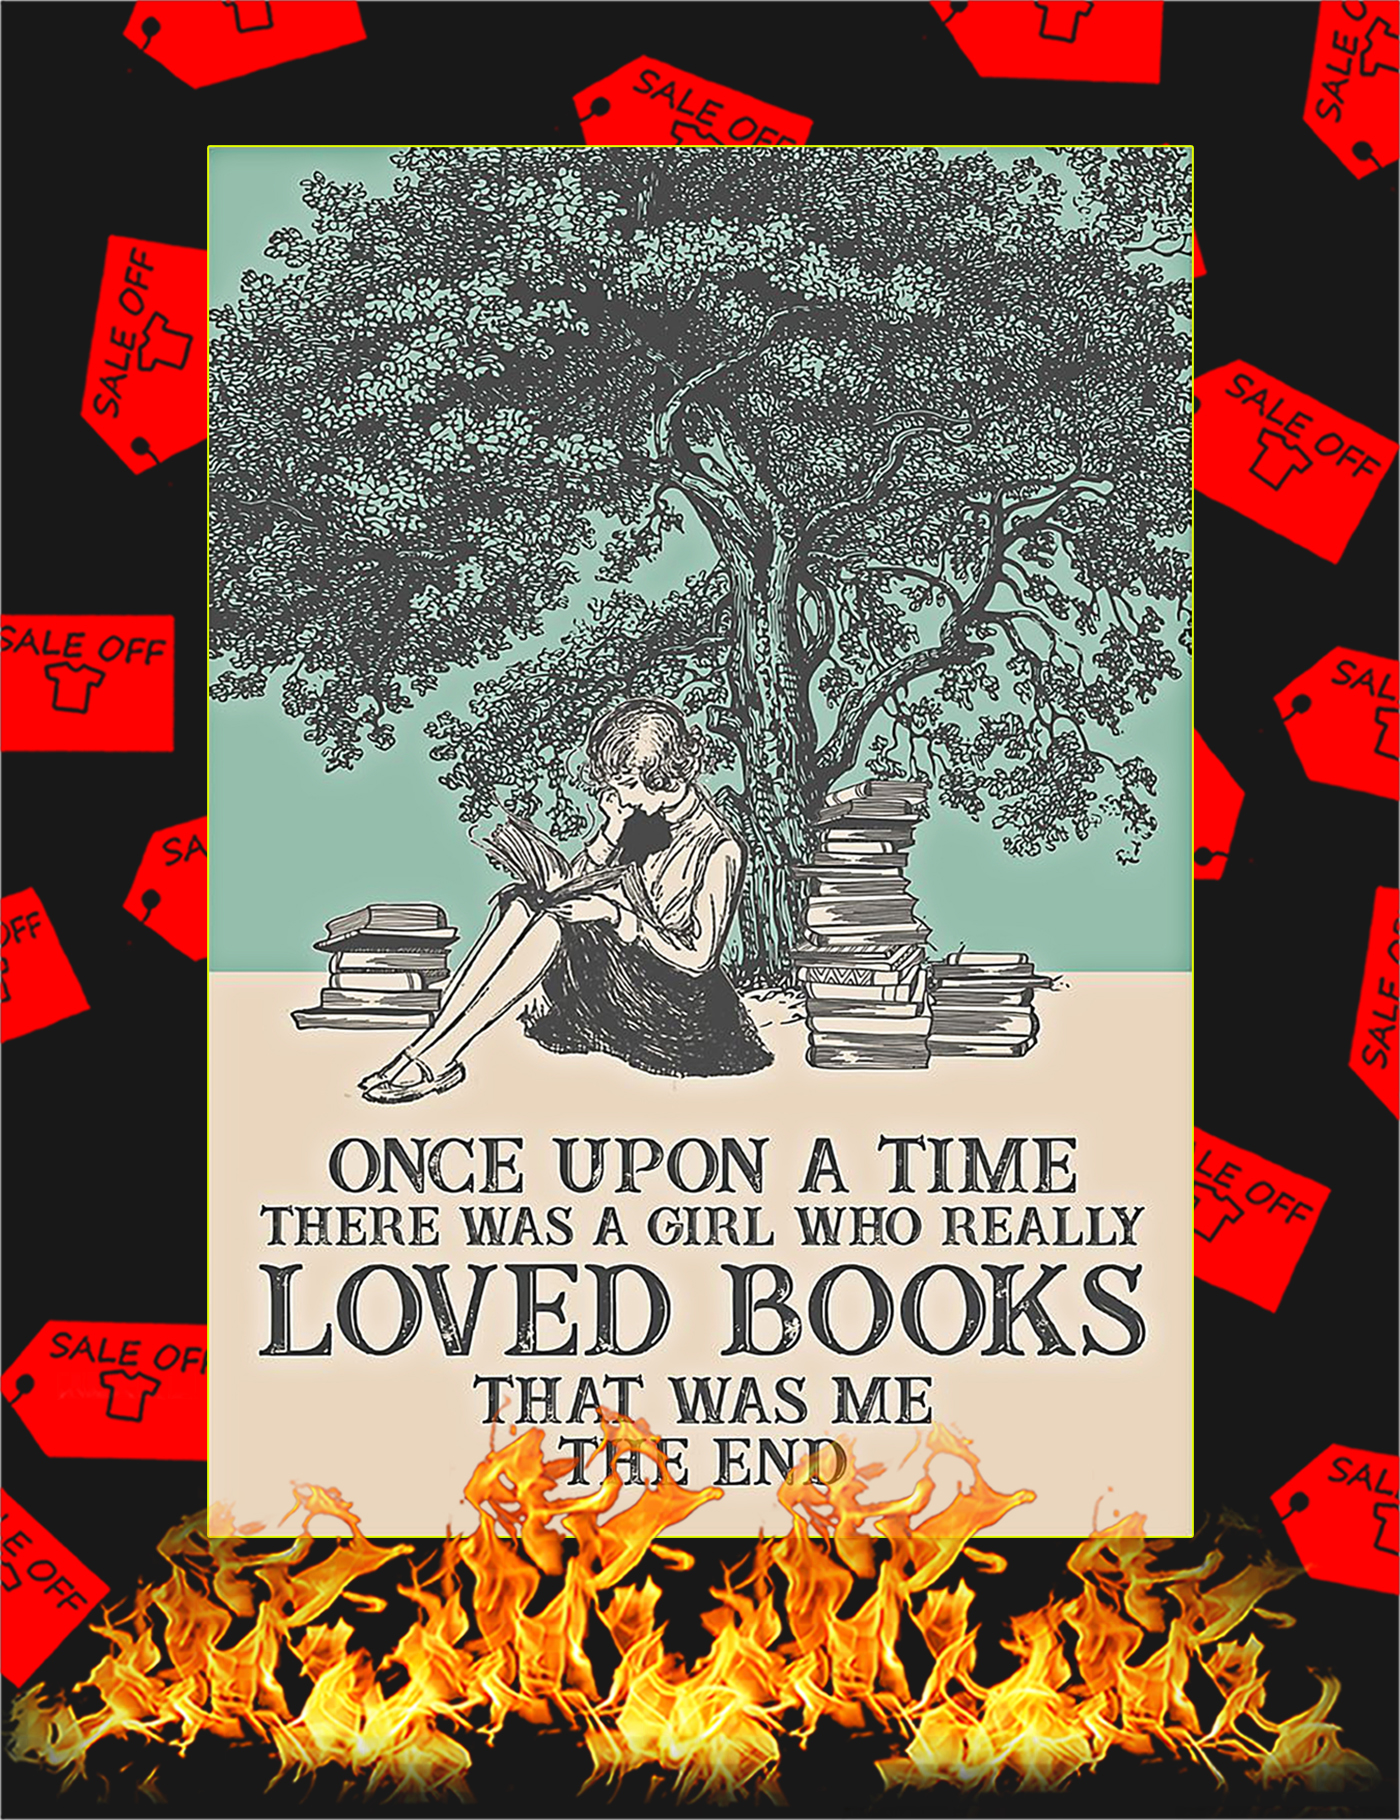 One upon a time there was a girl who really loved books that was me the end poster - A1